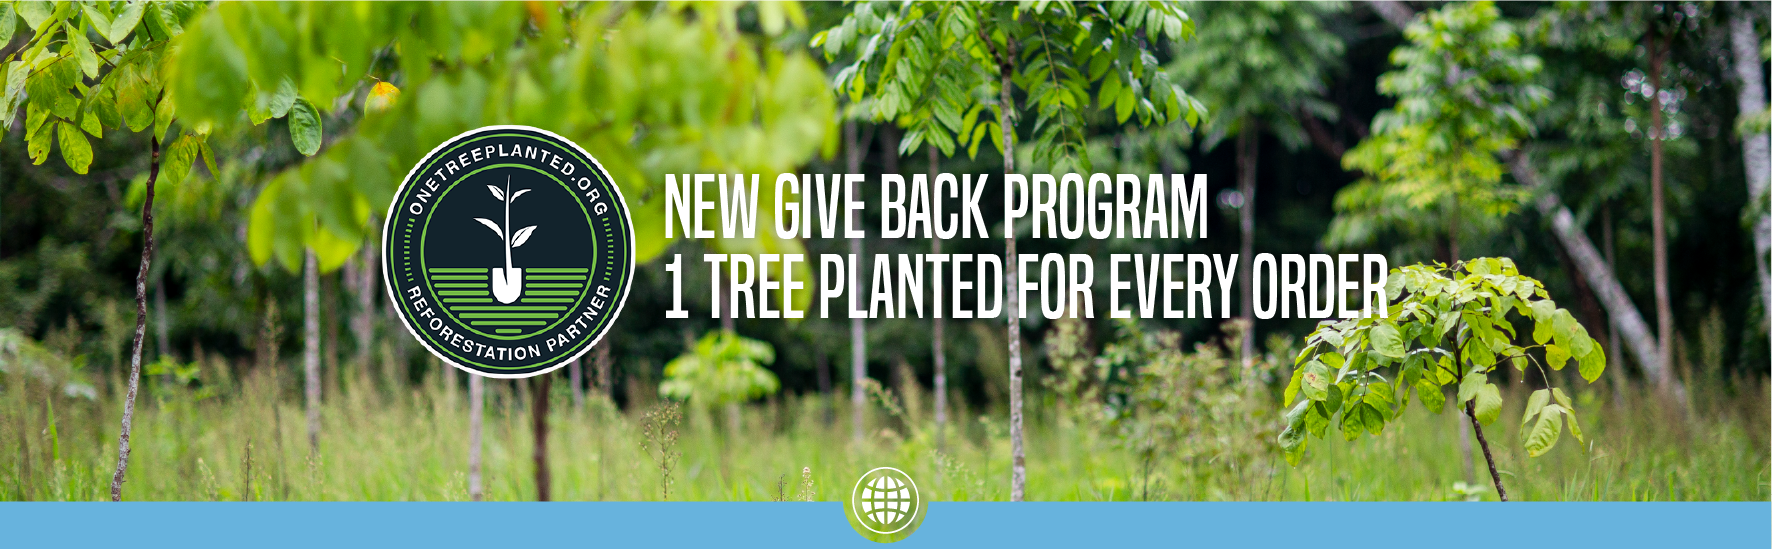 1 Tree Planted for Every Order